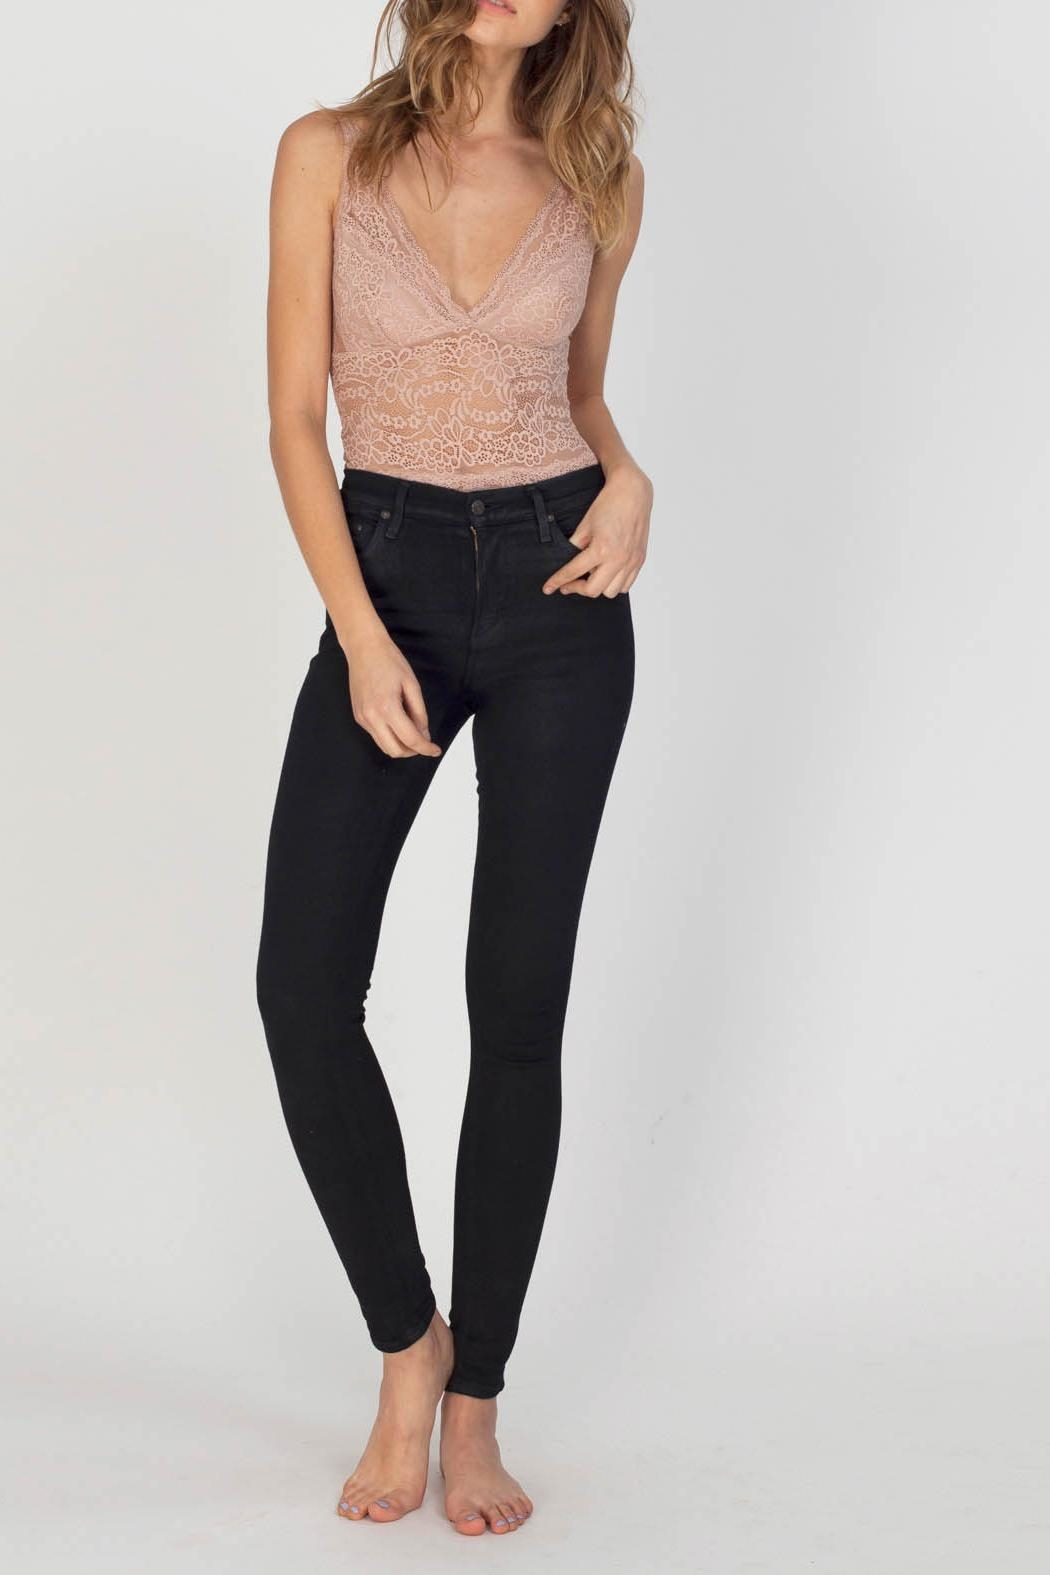 Gentle Fawn Valentine Bodysuit - Back Cropped Image